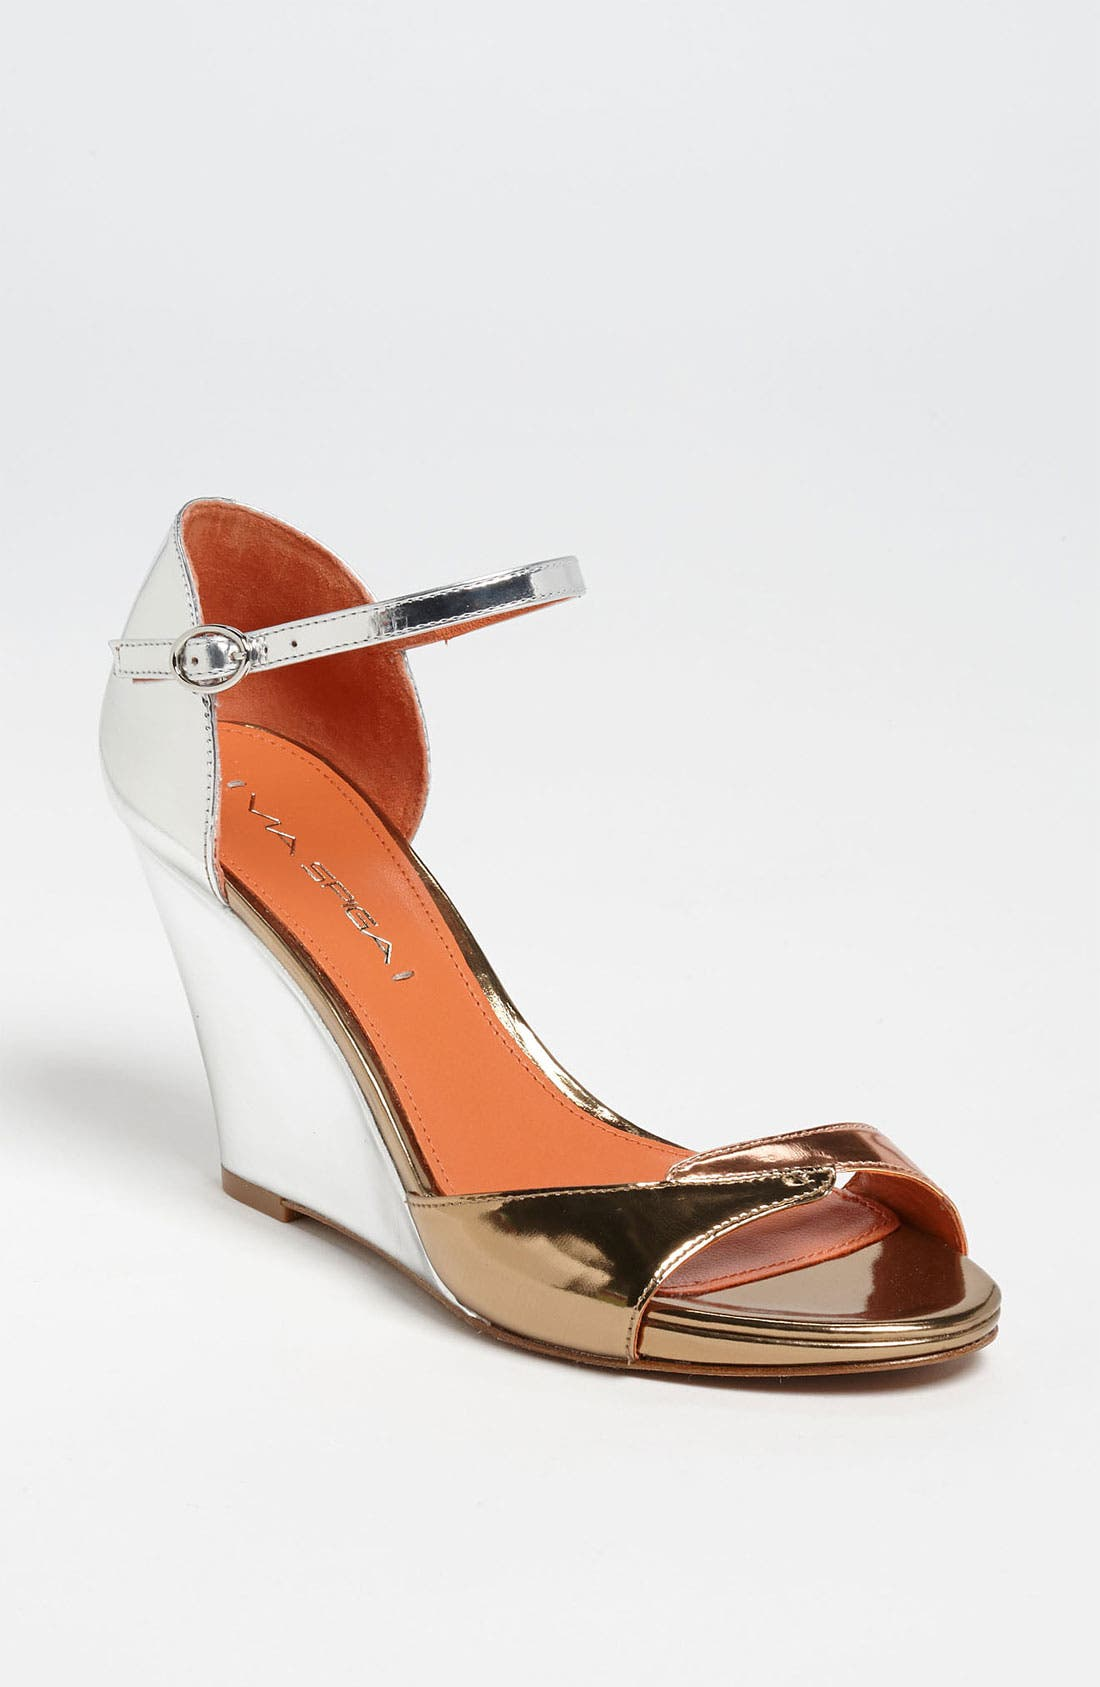 Alternate Image 1 Selected - Via Spiga 'Danice' Wedge Sandal